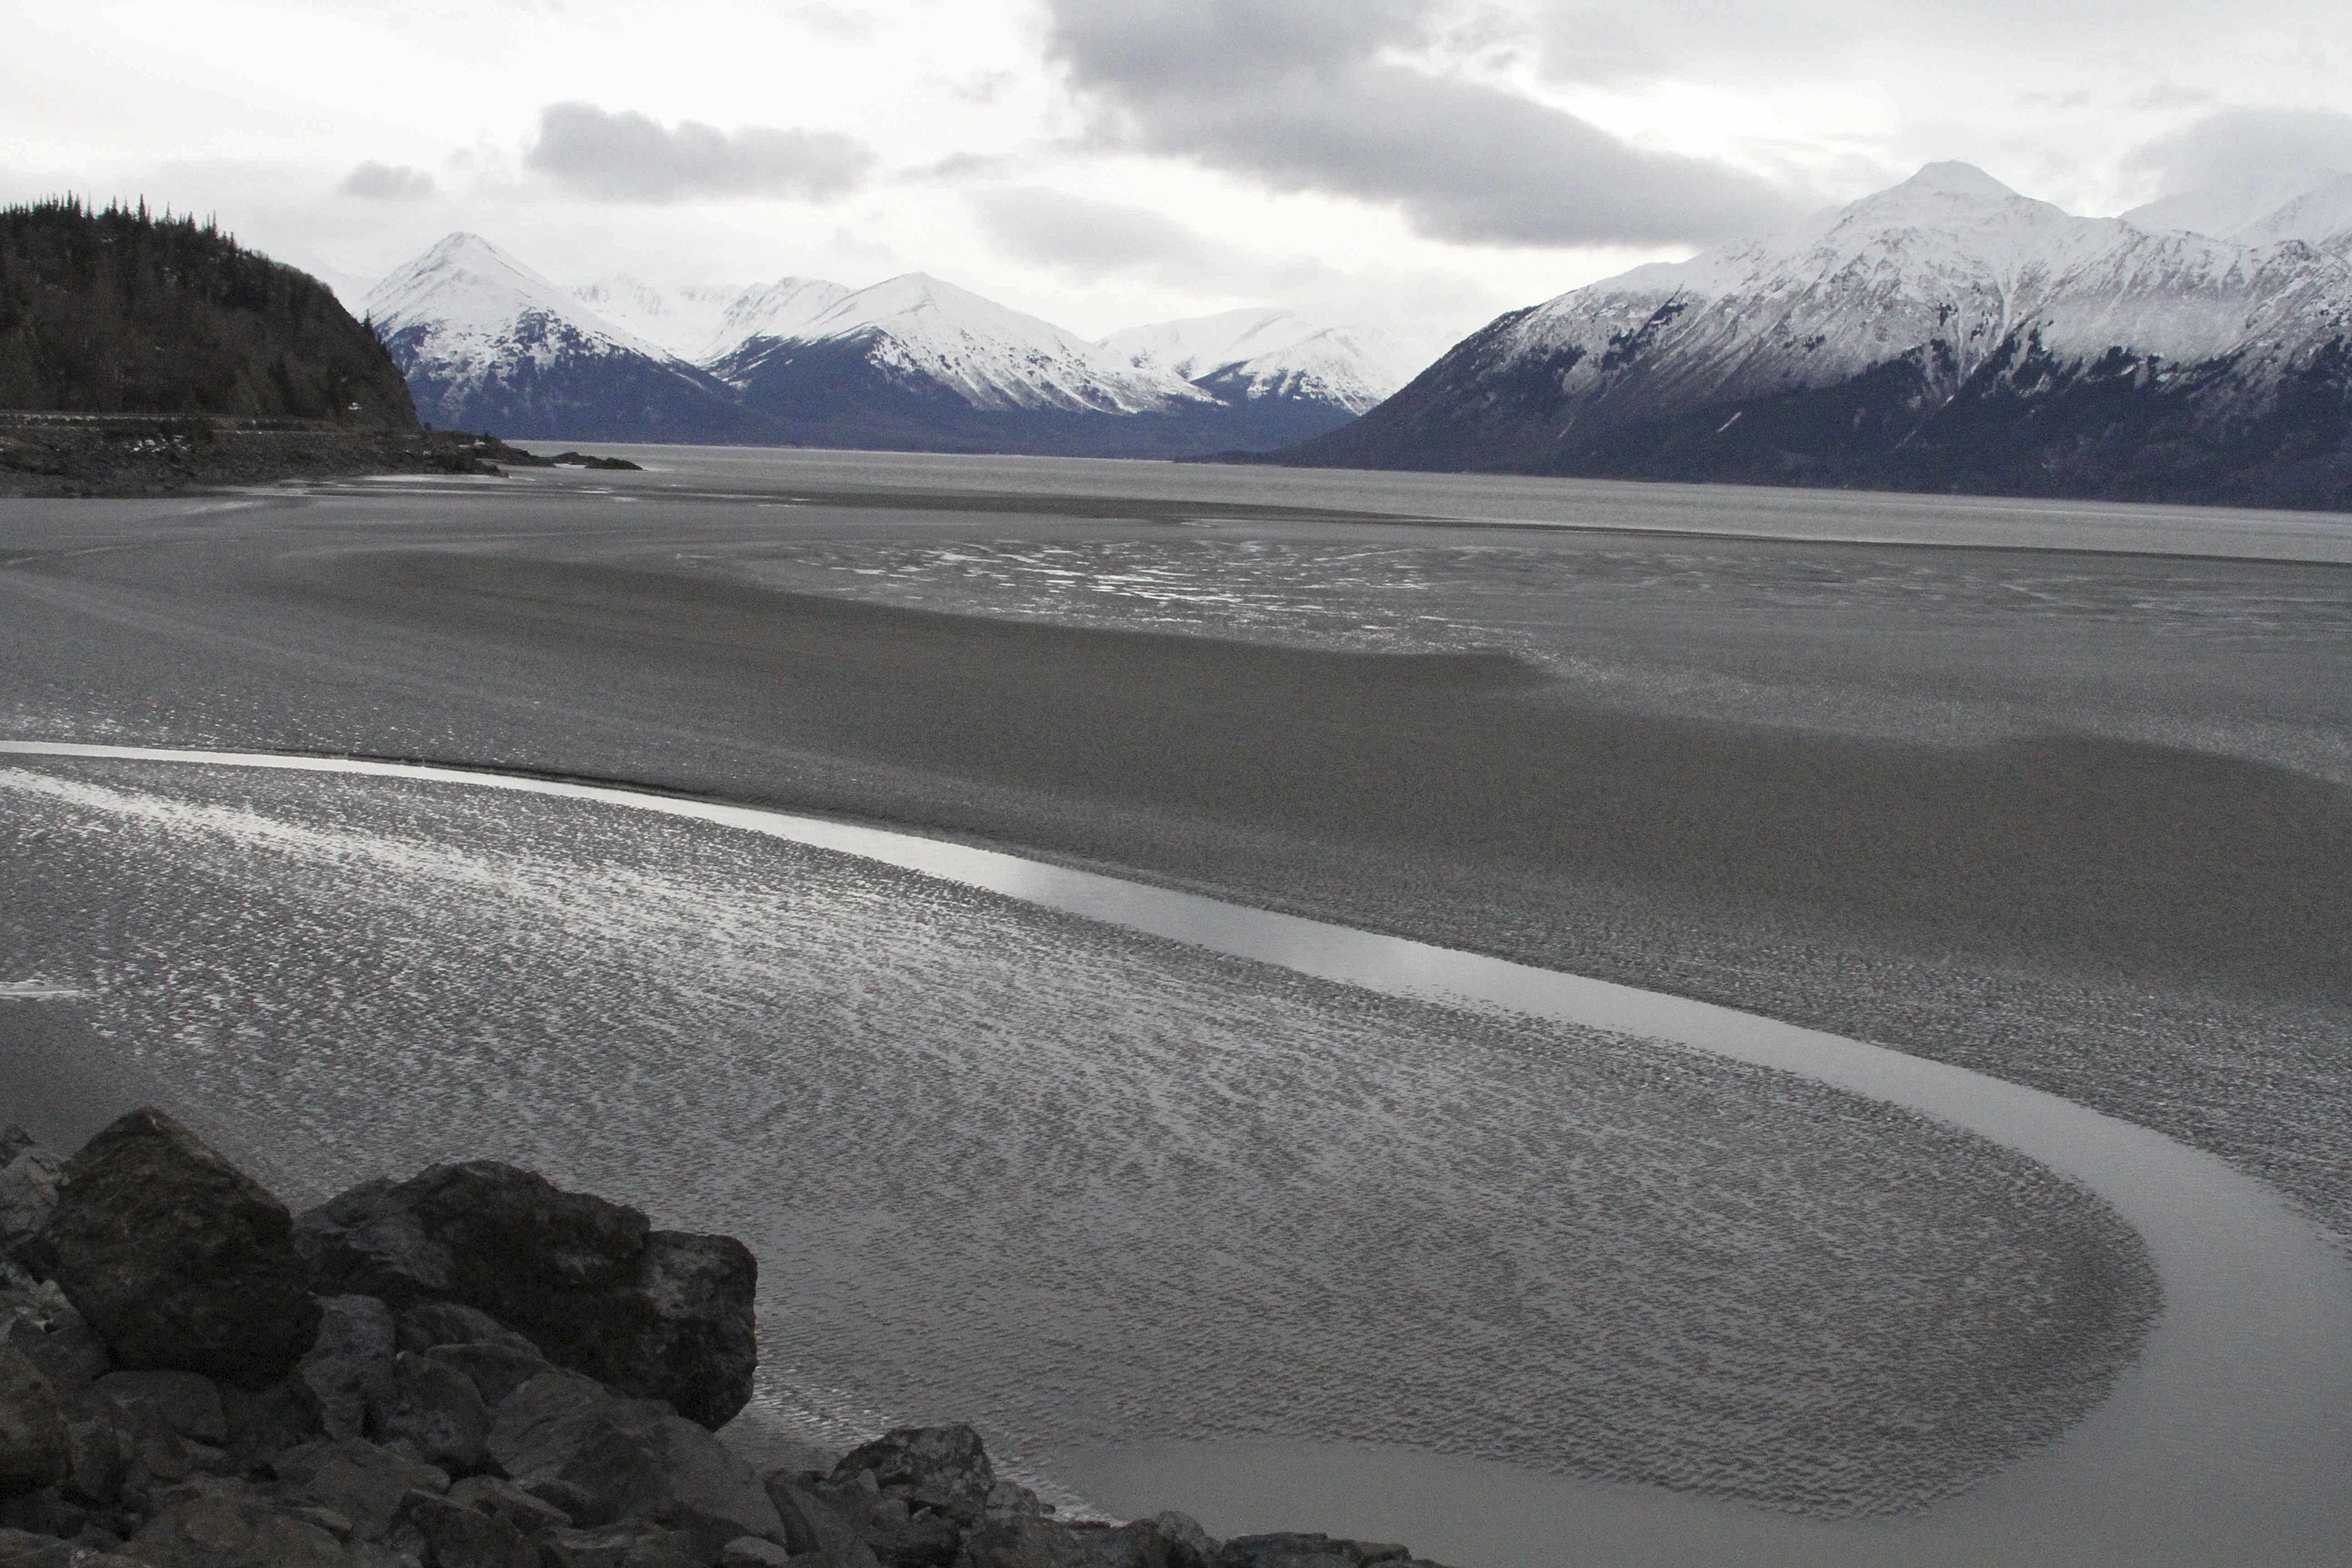 Alaska Underwater Pipeline Leak FILE - In this March 7, 2016, file photo, a ribbon of water cuts through the mud flats of Cook Inlet, just off the shore of Anchorage, Alaska. Natural gas is bubbling up from an underwater pipeline in Alaska's Cook Inlet, discovered on Feb 7, 2017, when a Hilcorp helicopter spotted bubbles at the surface and reported the leak. State regulators say the danger is minimal but the Coast Guard has issued a warning to mariners and federal wildlife authorities have expressed concern about harm to endangered beluga whales. (AP Photo/Mark Thiessen, File)